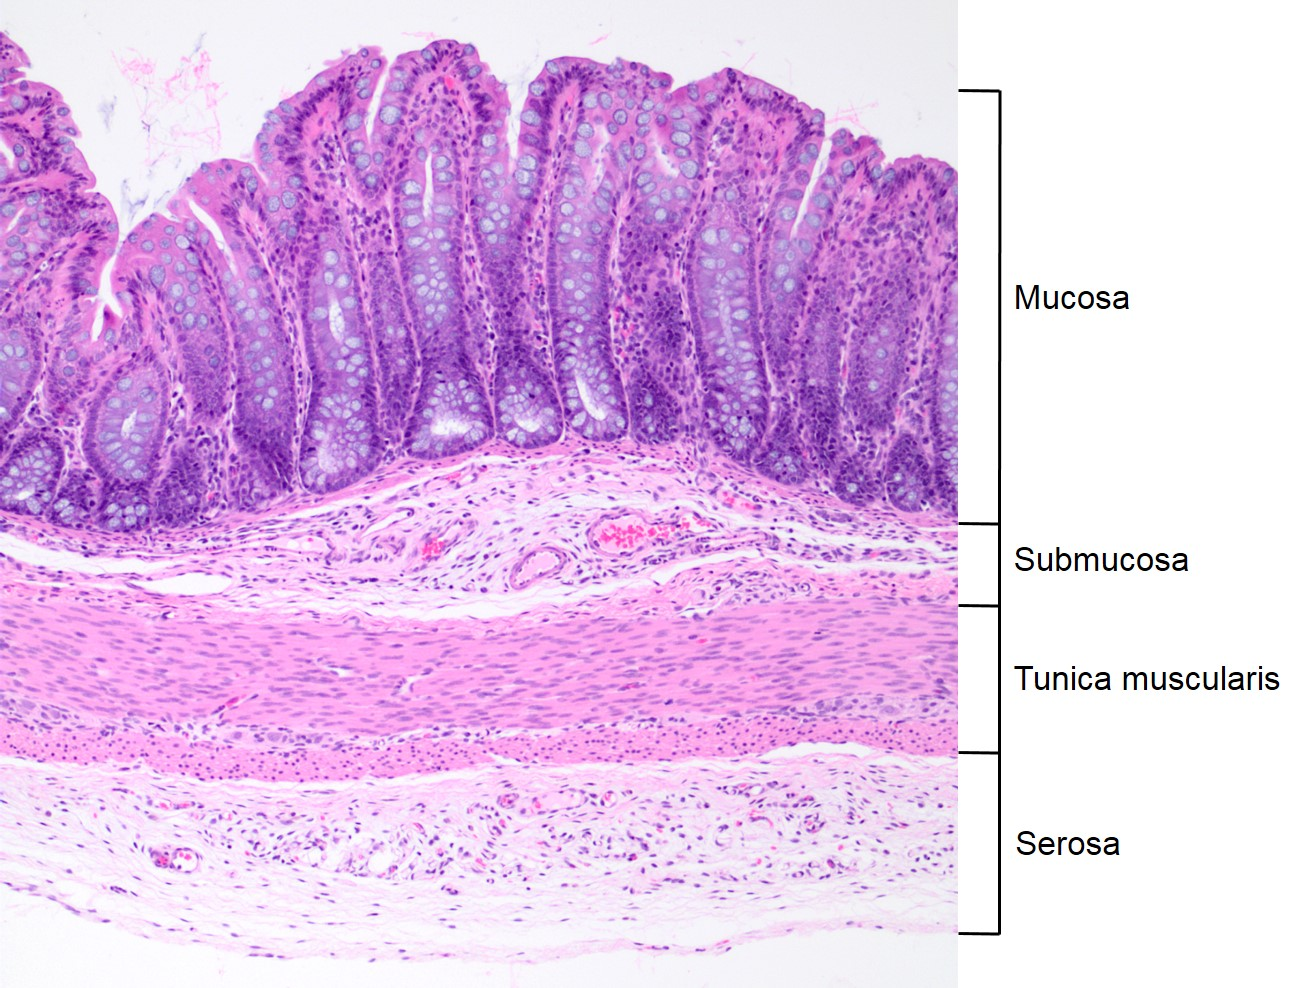 General Histologic Anatomy Of The Tubular Digestive Tract